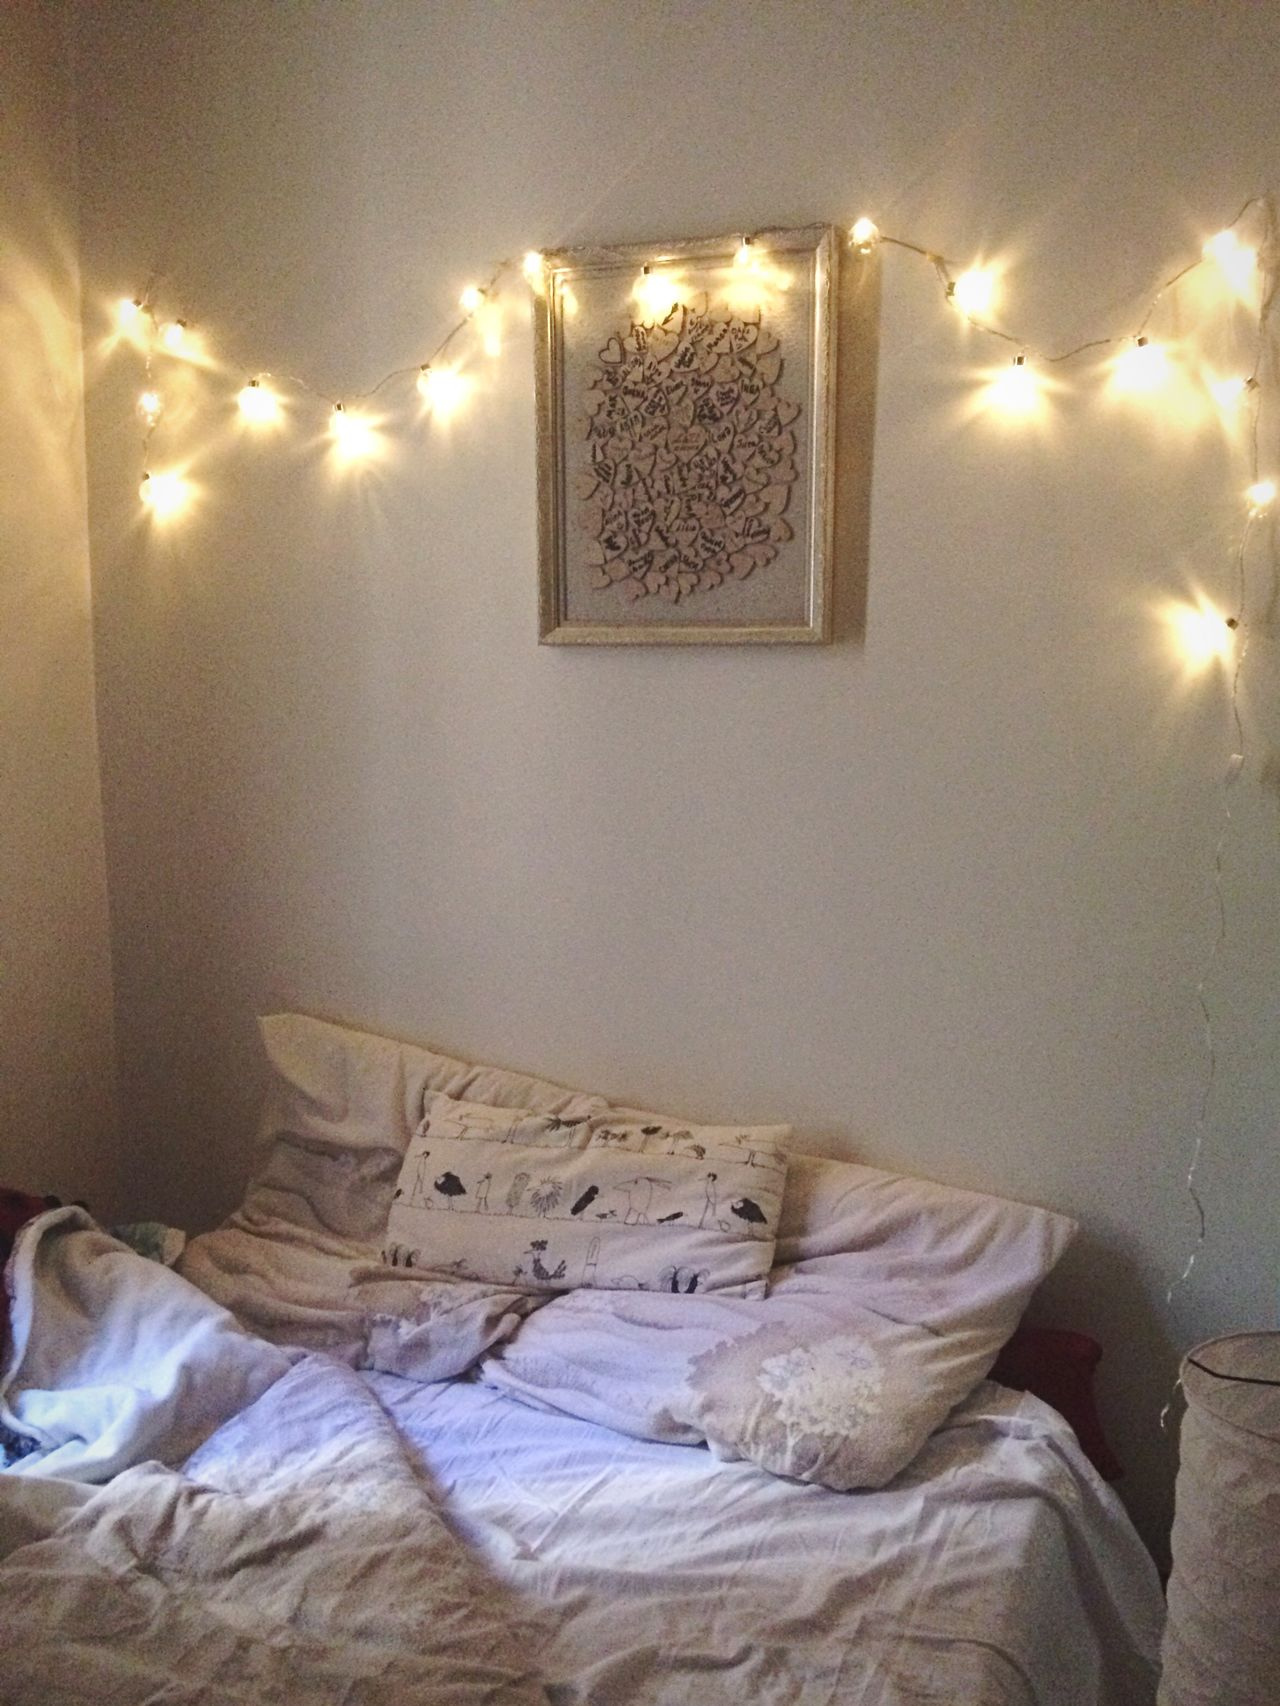 Always Be Cozy Light Bedroom Cozy Bed Indoors  Illuminated No People Night Place Of Heart